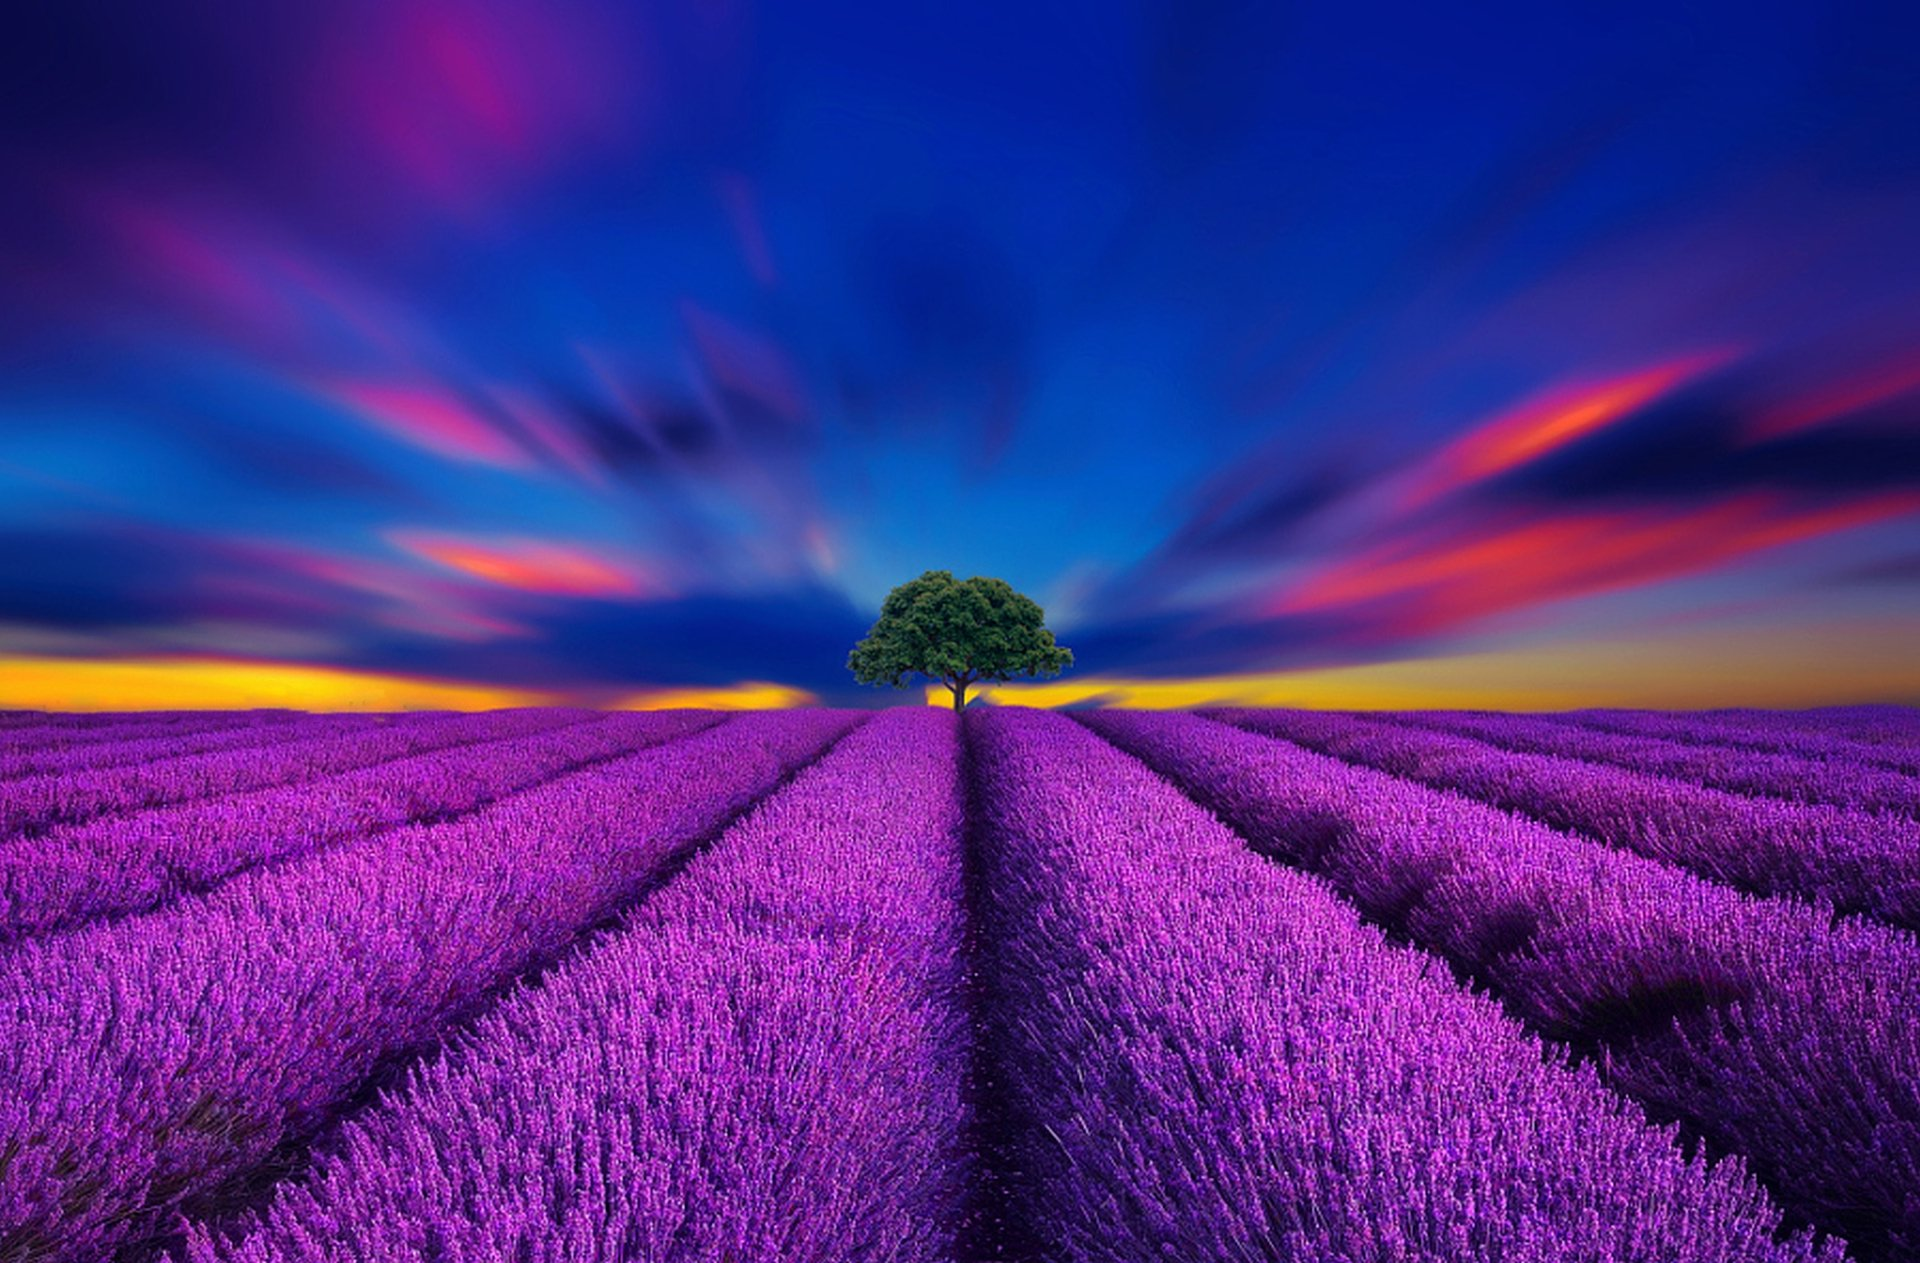 Lavender Field Sunset Hd Wallpaper Background Image 1920x1263 Id 702031 Wallpaper Abyss